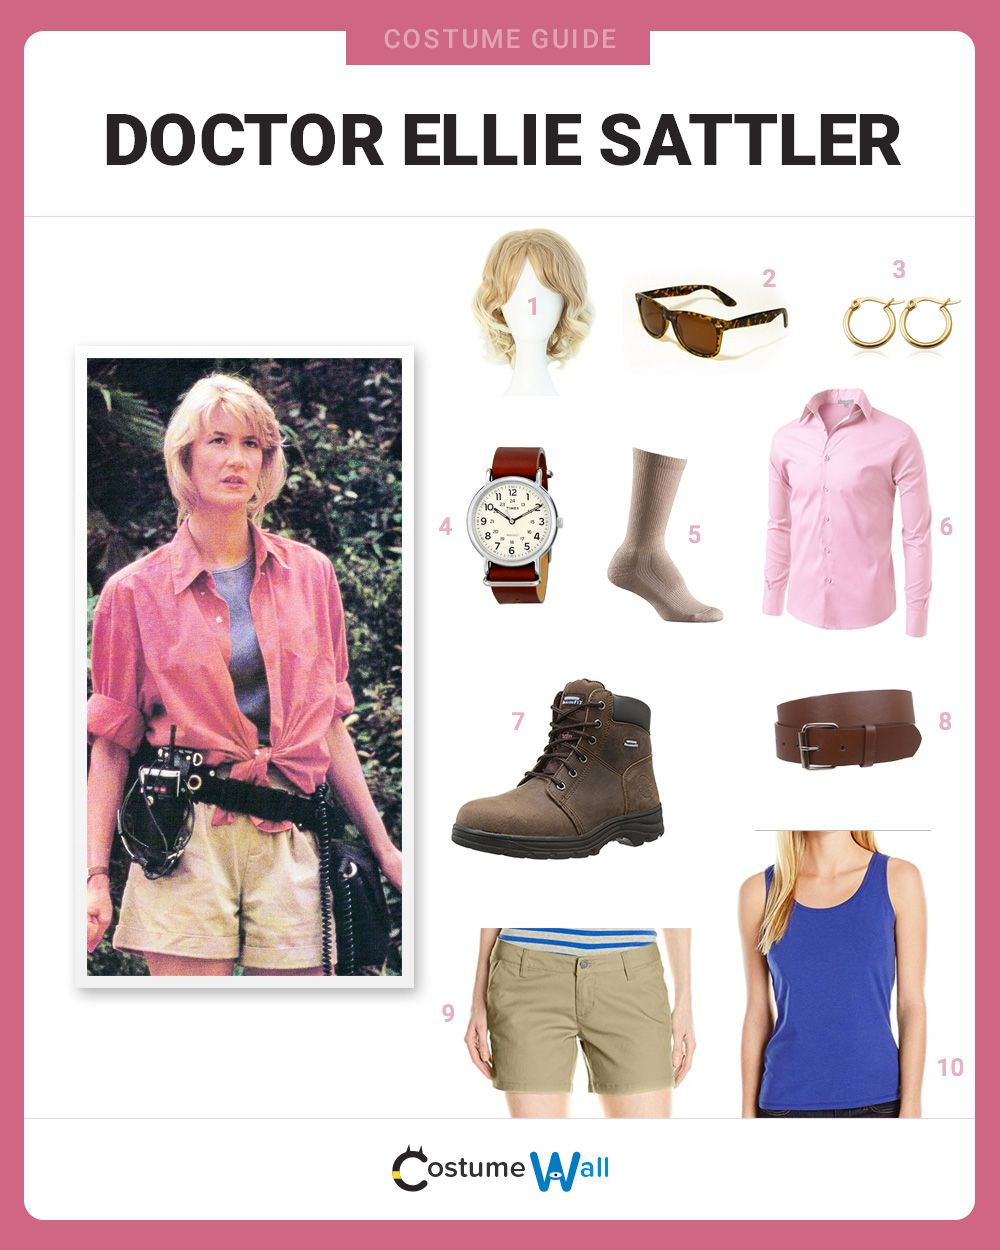 86ed9408accc Dress up as Dr. Ellie Sattler from Jurassic Park and you ll be ready to  evade some not-so-friendly prehistoric monsters.